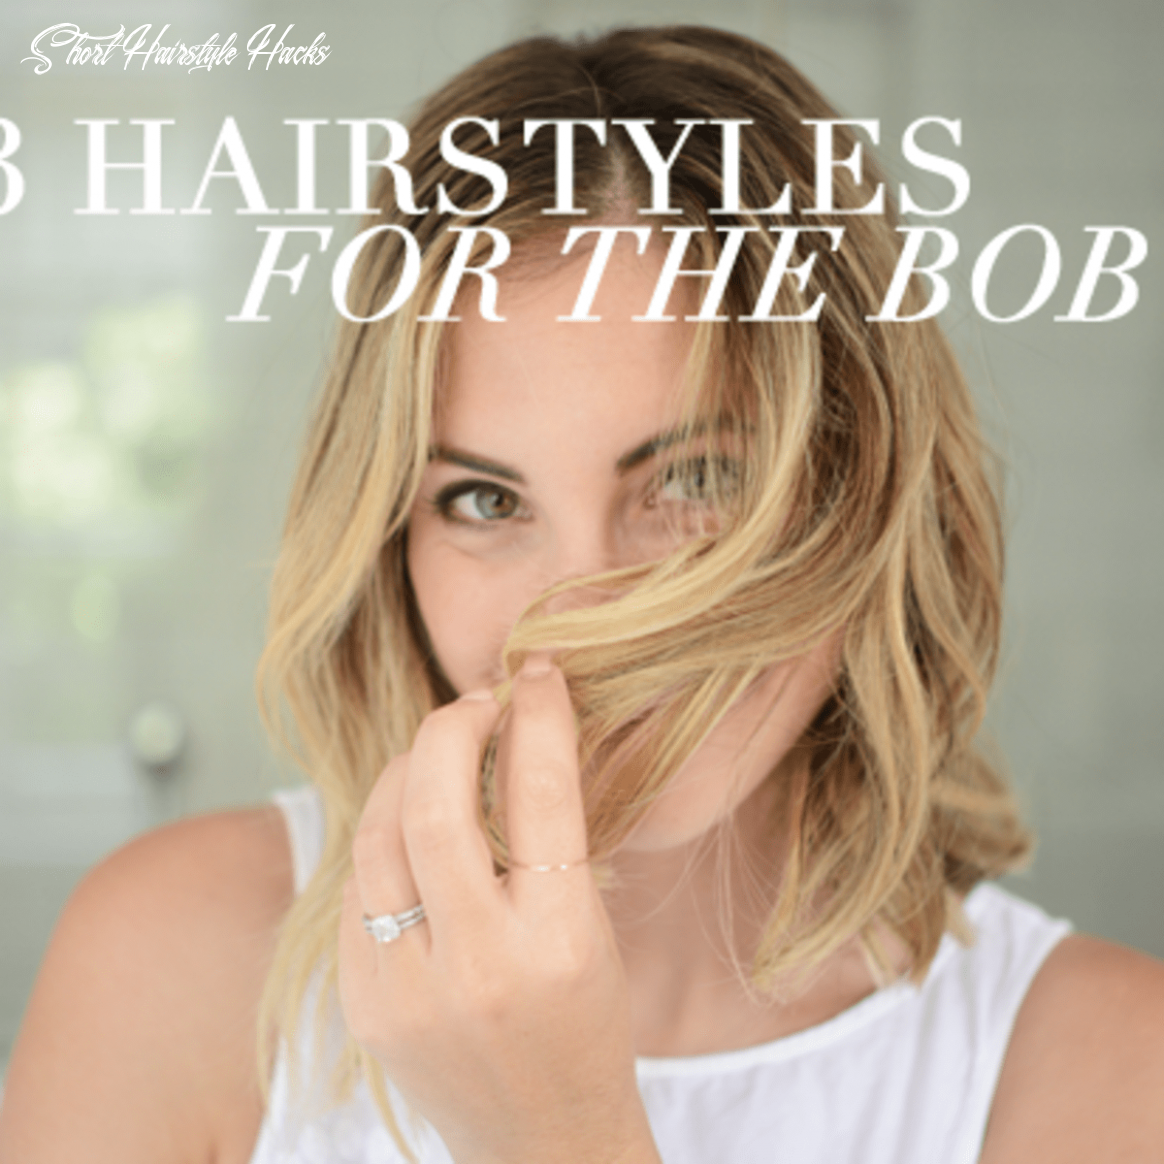 11 Hairstyle Hacks For a Short Bob - Cupcakes & Cashmere